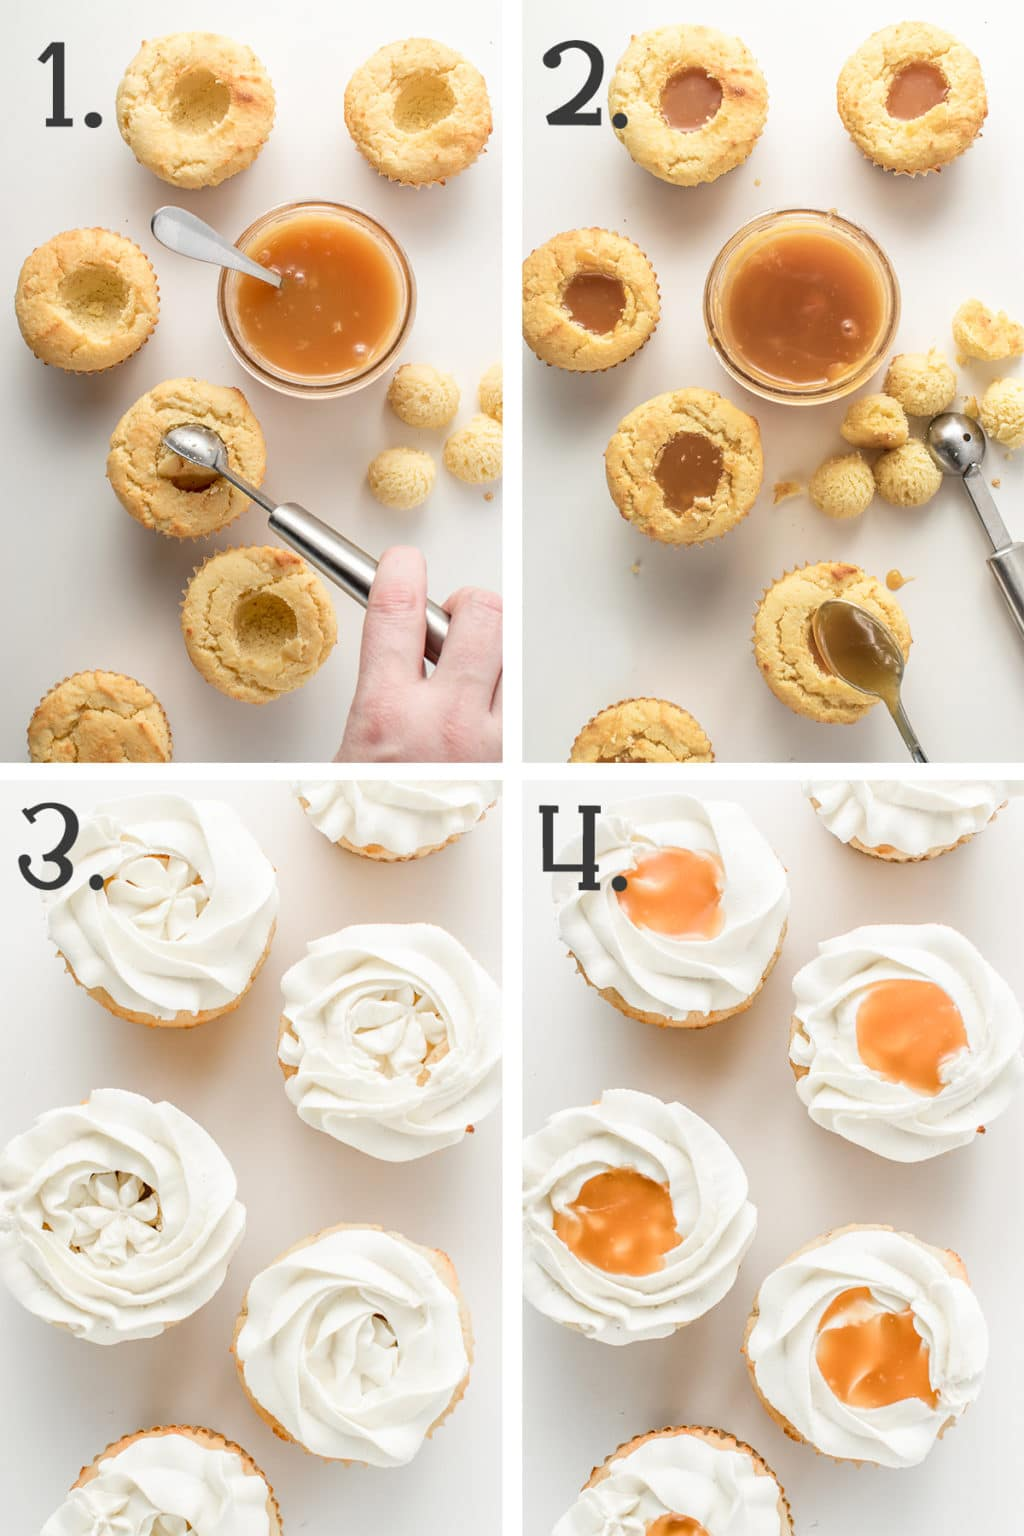 In process photos of cupcakes being filled with caramel and piped with white creamy frosting